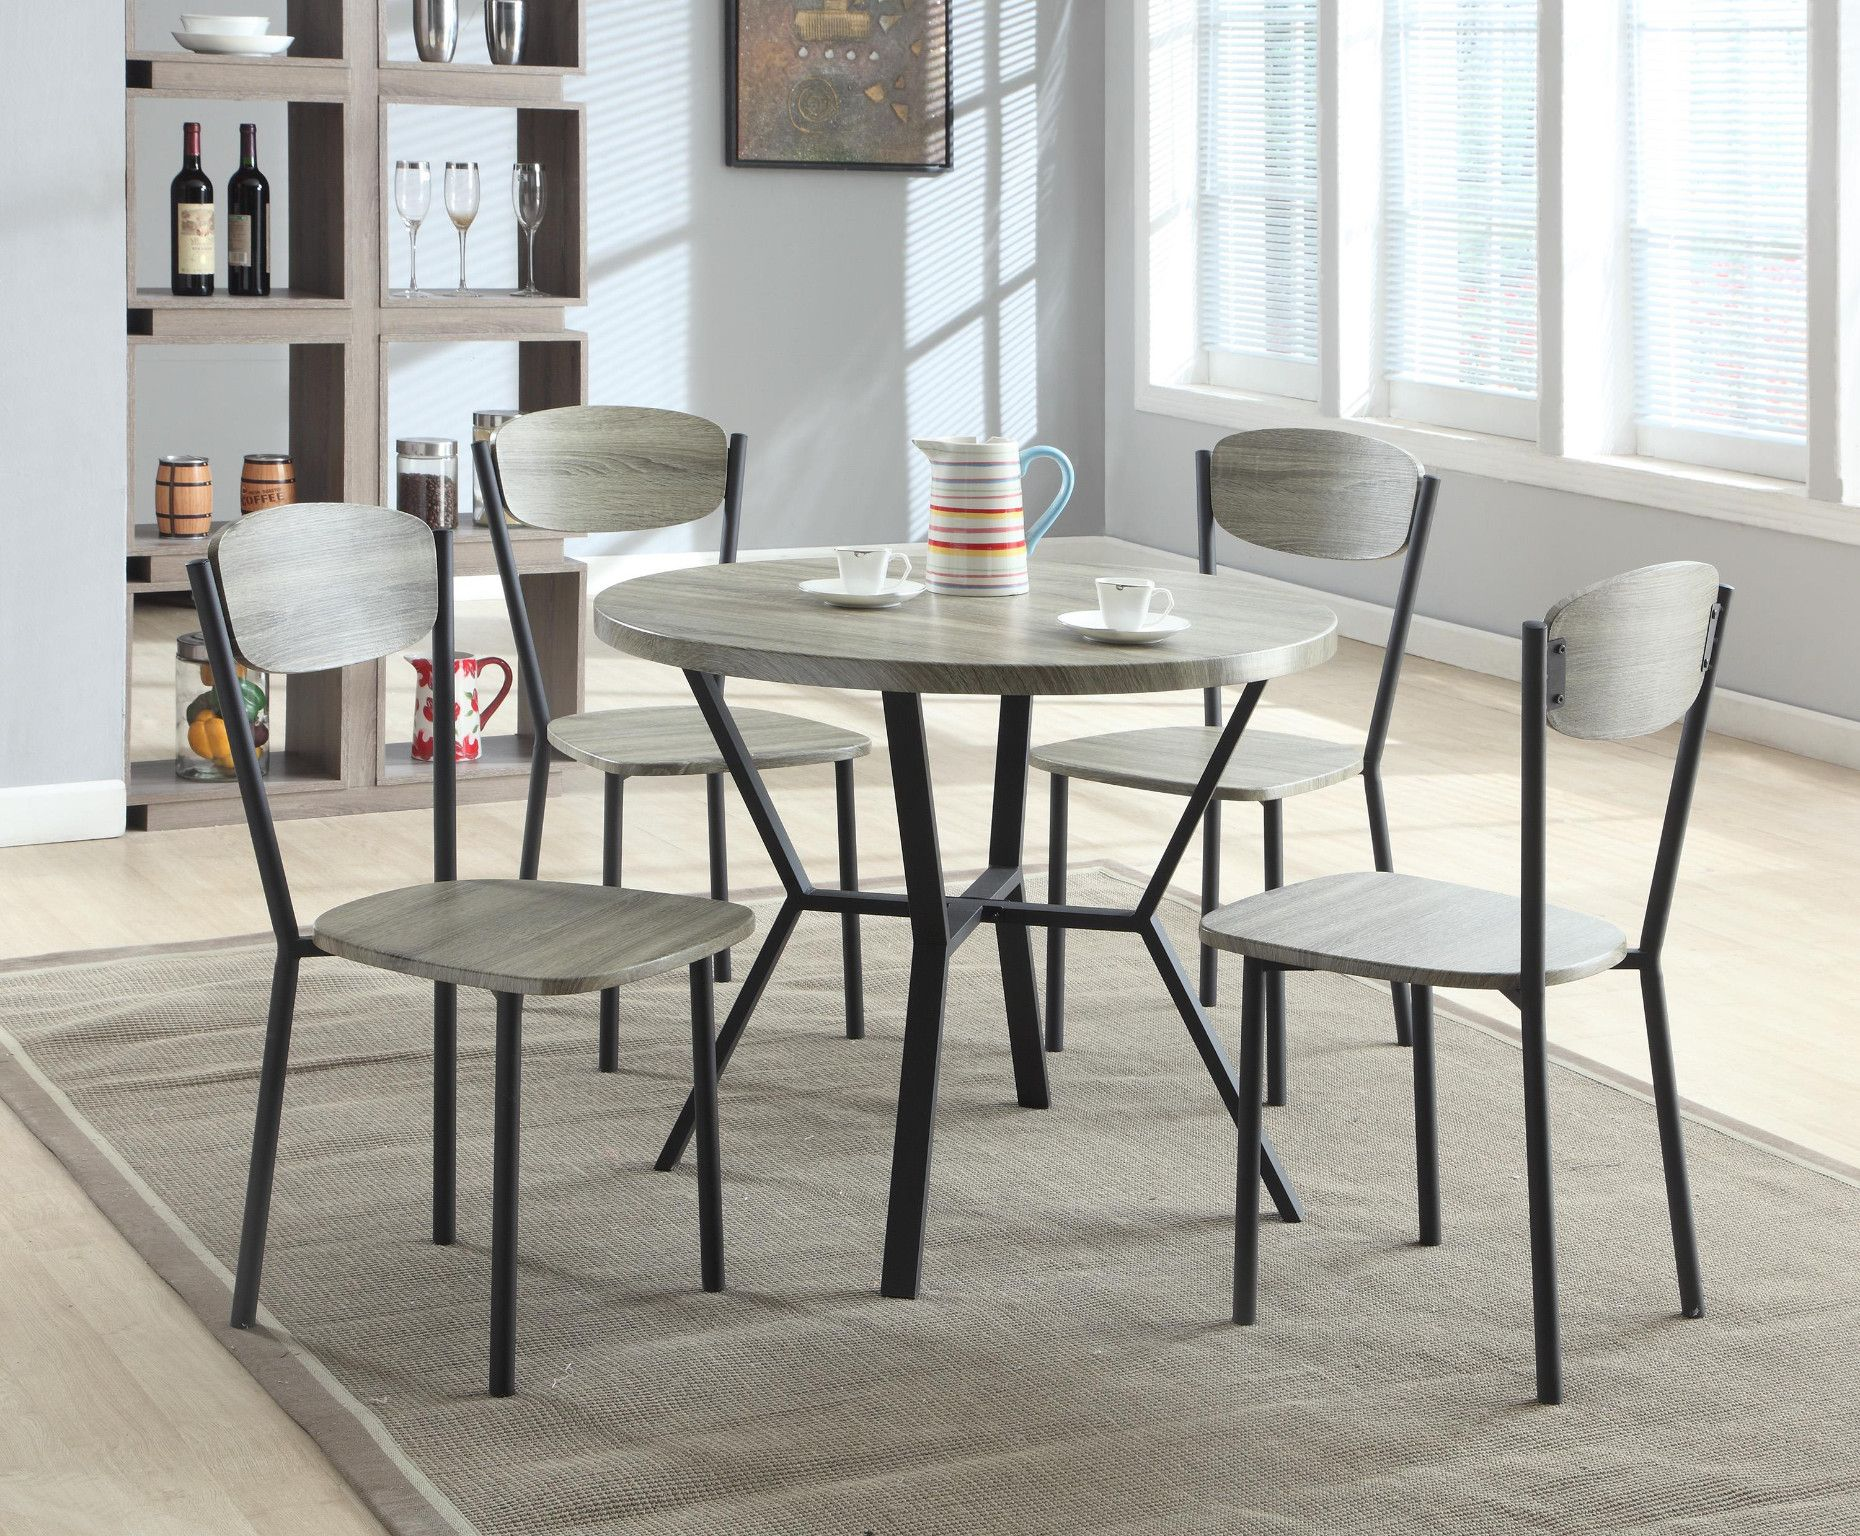 Blake 5 Piece Dinette Table And 4 Chairs 299 00 Table 35 2 Dia X